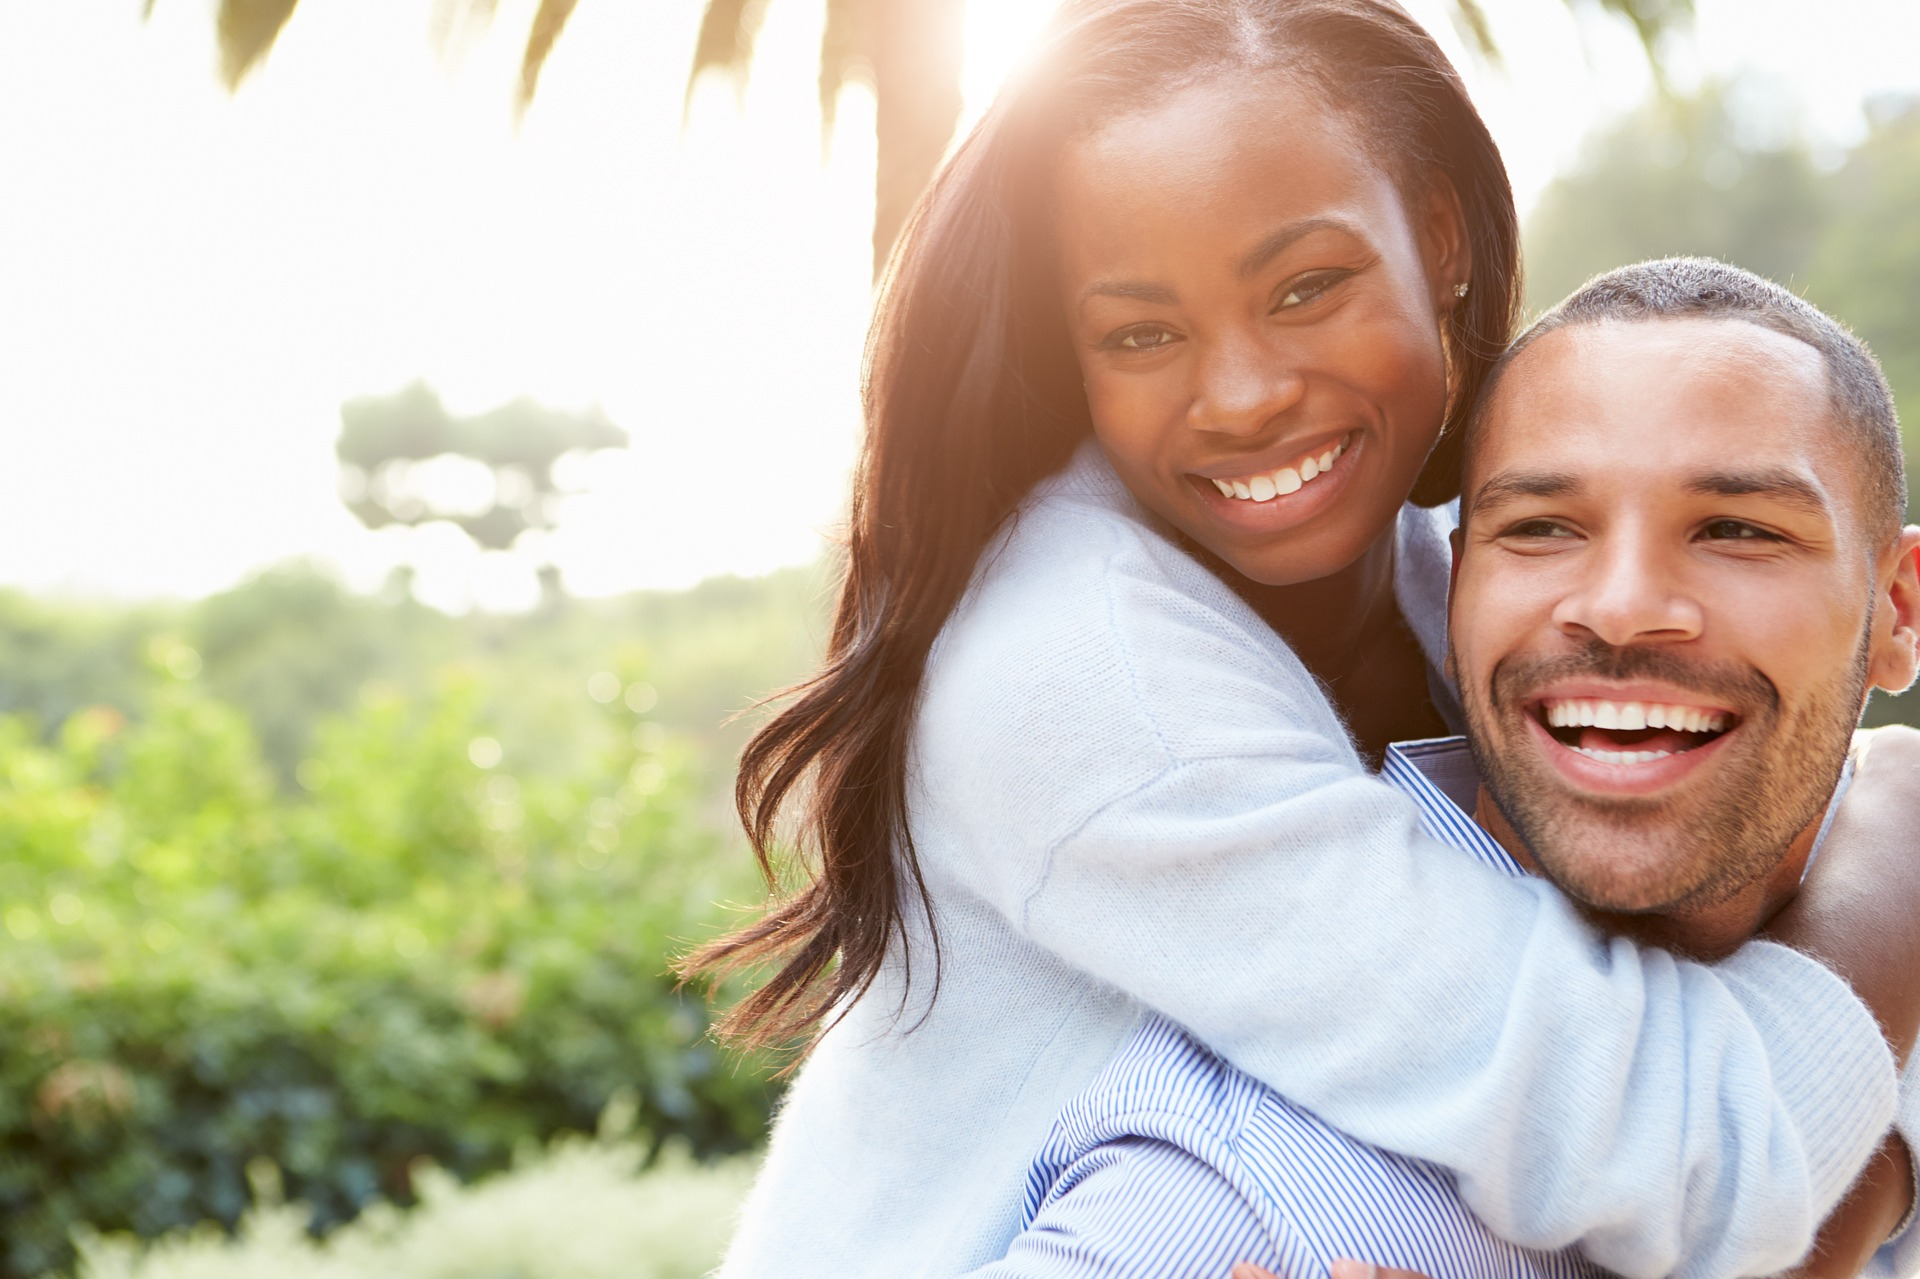 Are people in relationships happier